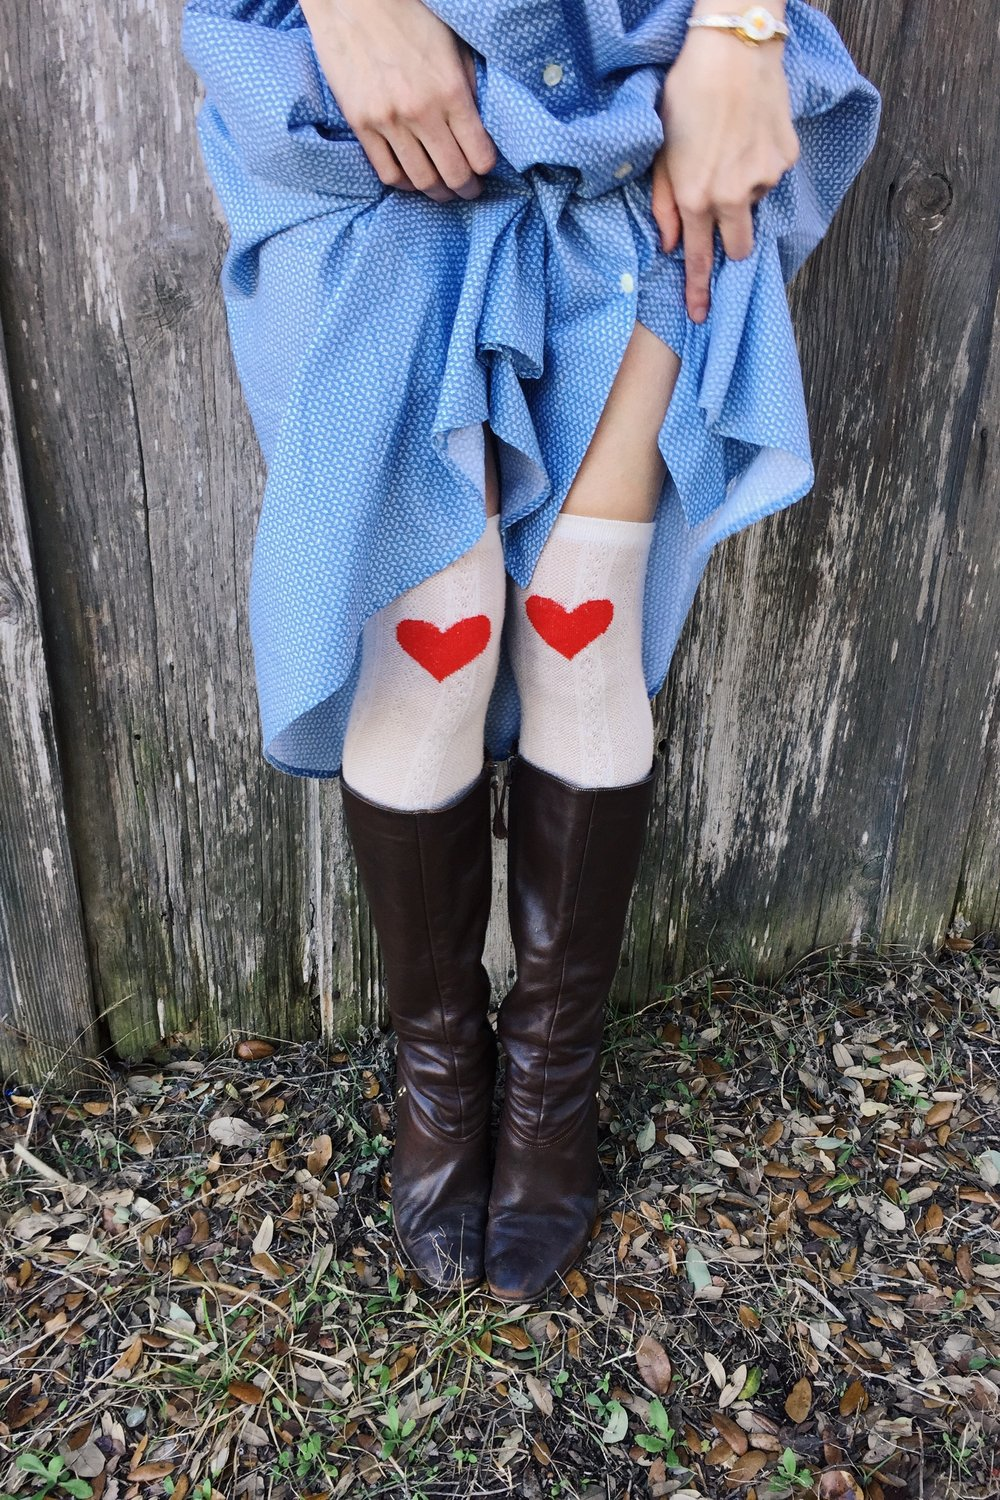 Leslie of Dalena Vintage in a pair of heart socks from Urban Outfitters.